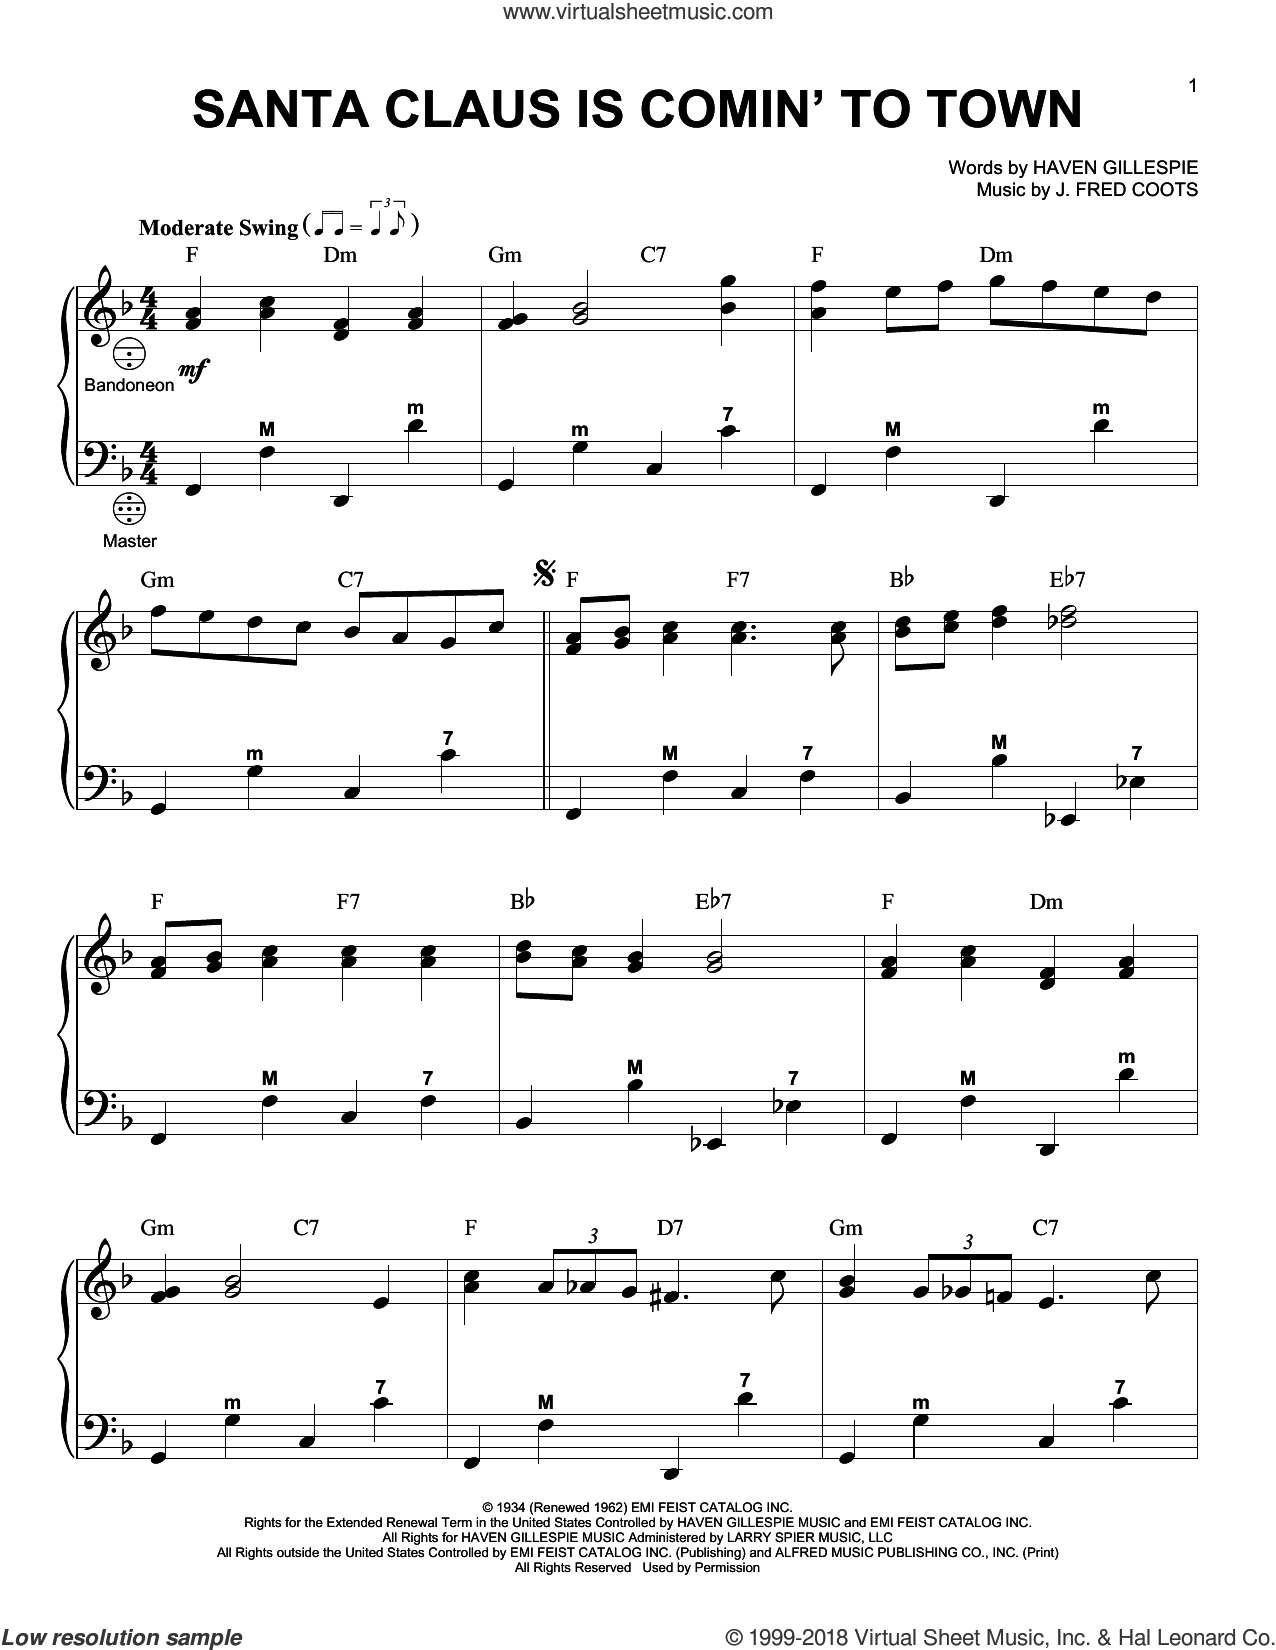 Santa Claus Is Comin' To Town sheet music for accordion by J. Fred Coots and Haven Gillespie, intermediate skill level